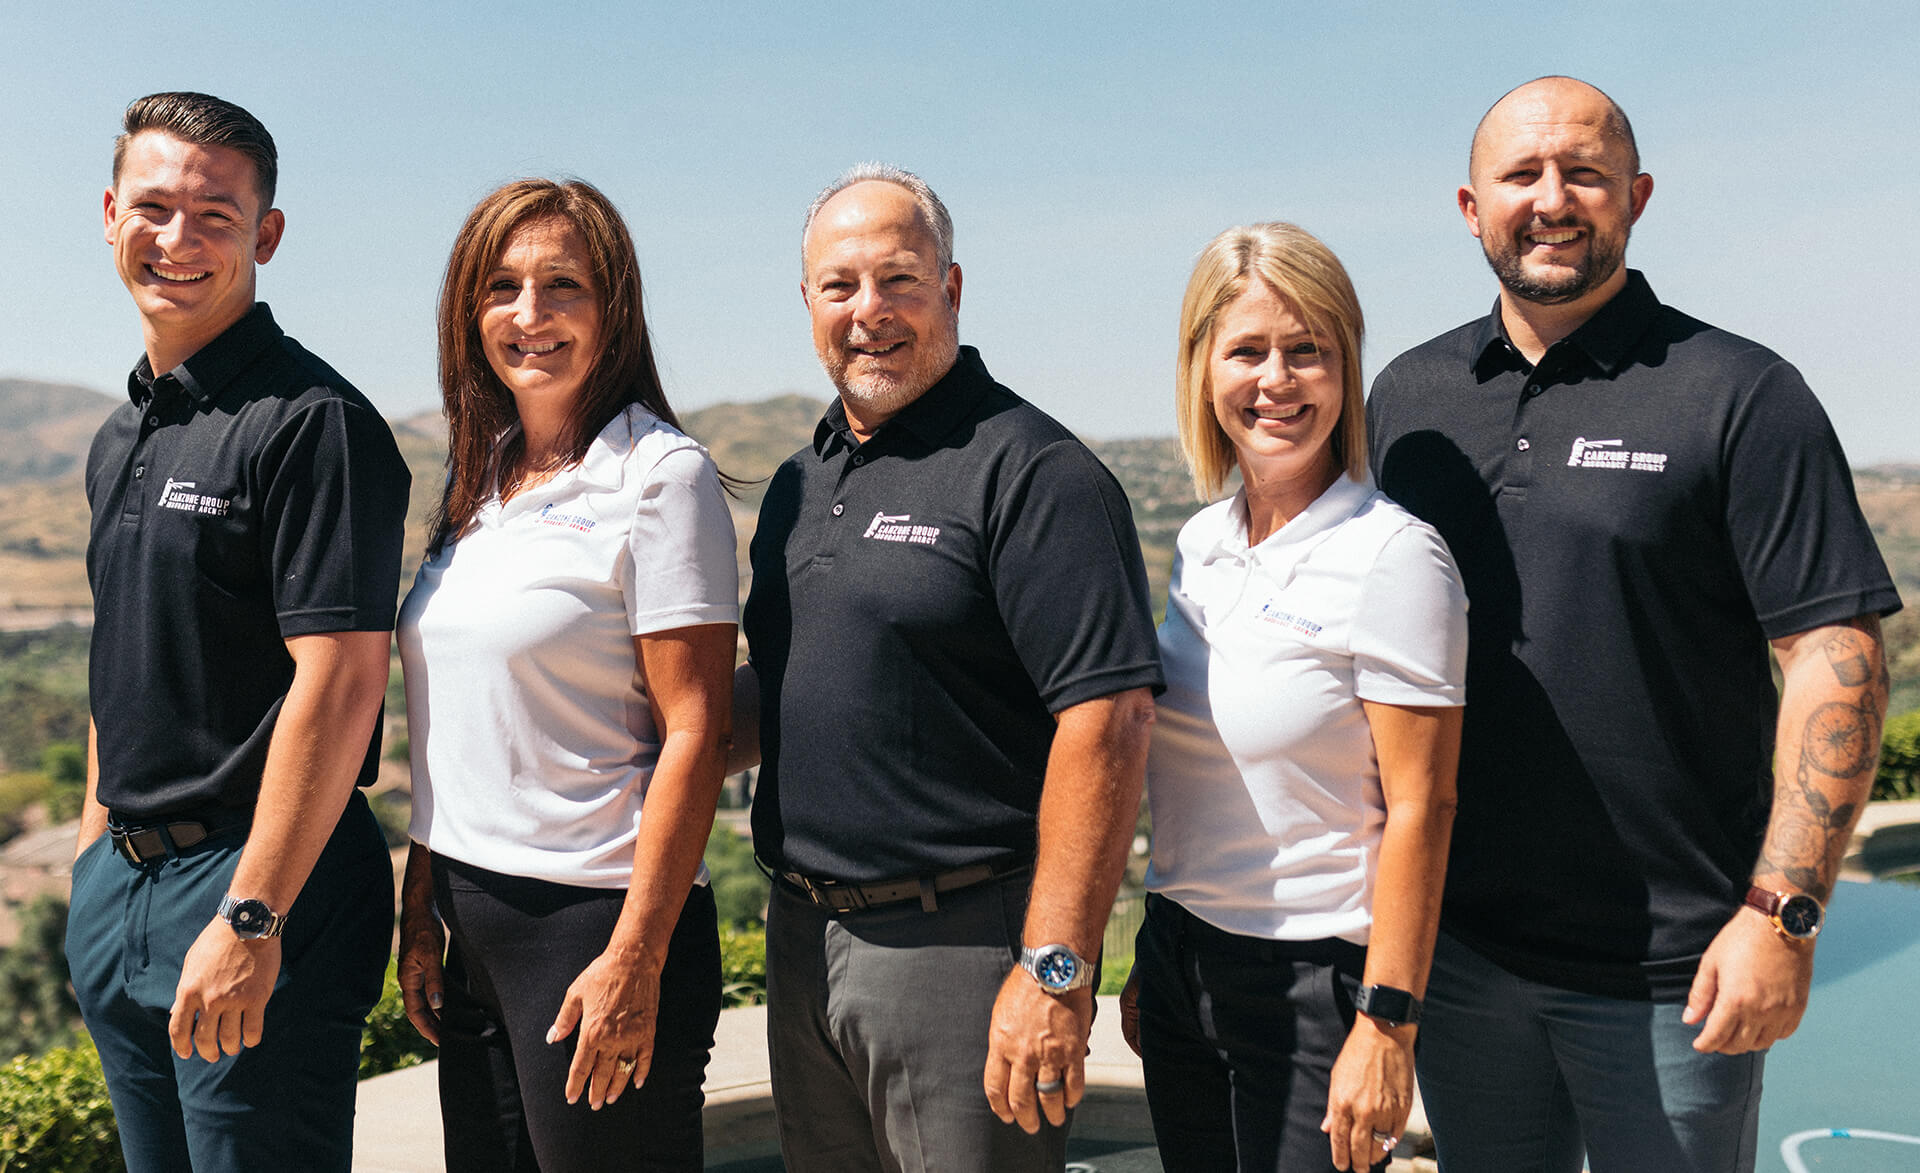 The Canzone Group Insurance Agency Team